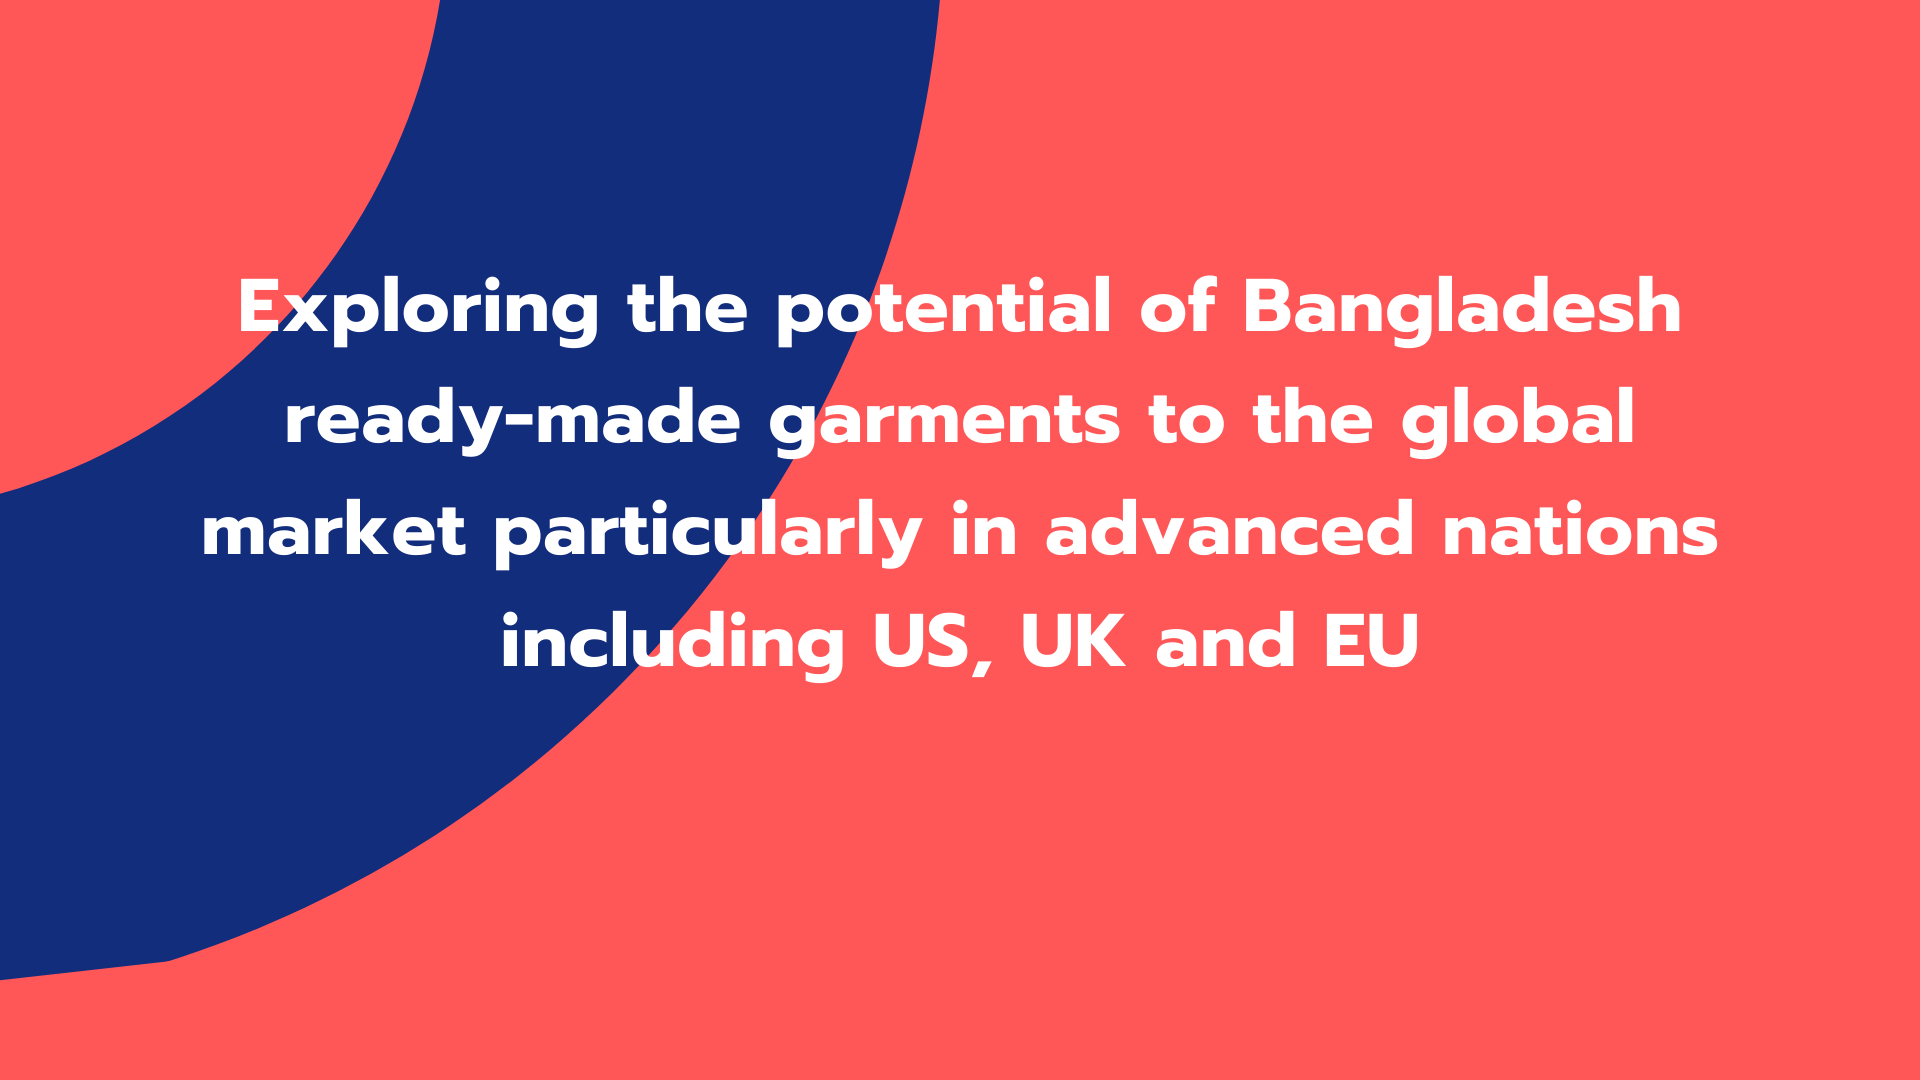 Exploring the potential of Bangladesh ready-made garments to the global market particularly in advanced nations including US, UK and EU